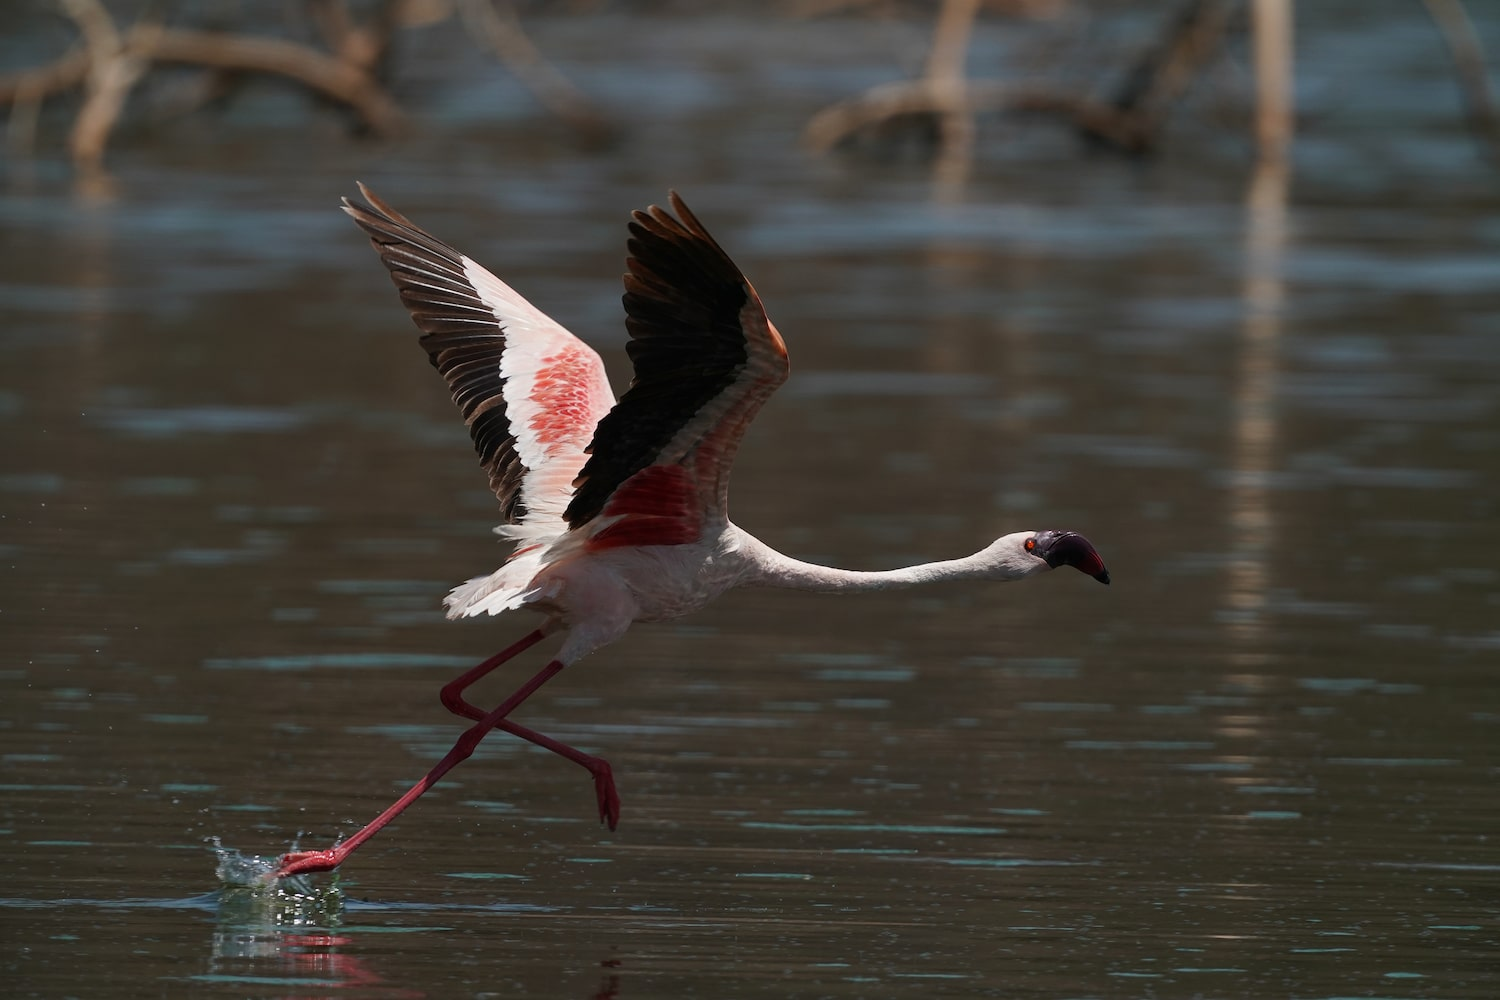 flamingo-landing-across-lake-alpha-7III